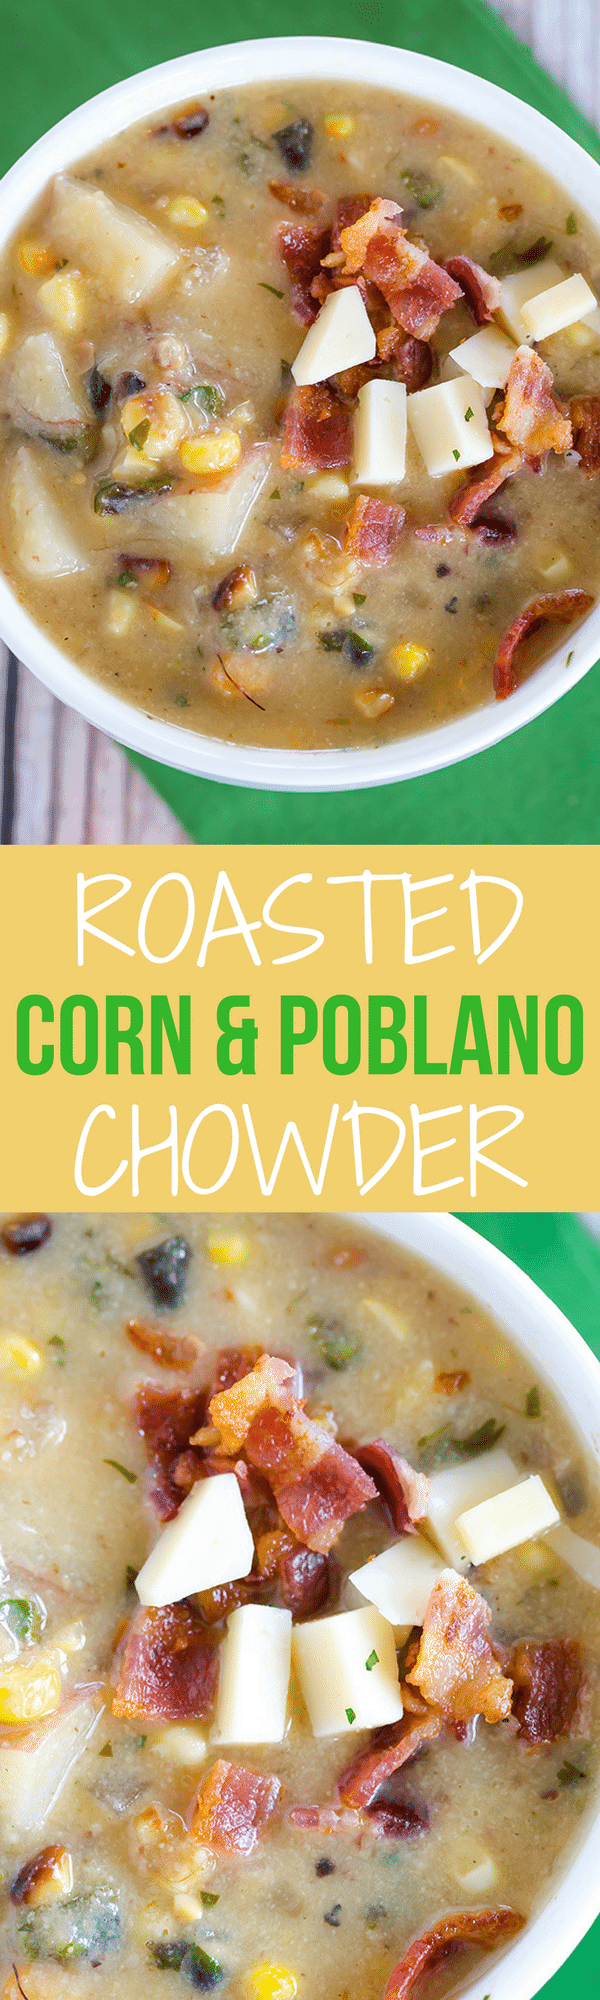 Roasted Corn & Poblano Chowder: Roasted corn and poblano chiles give this summer chowder a powerful flavor punch. It's never too warm for a good chowder!